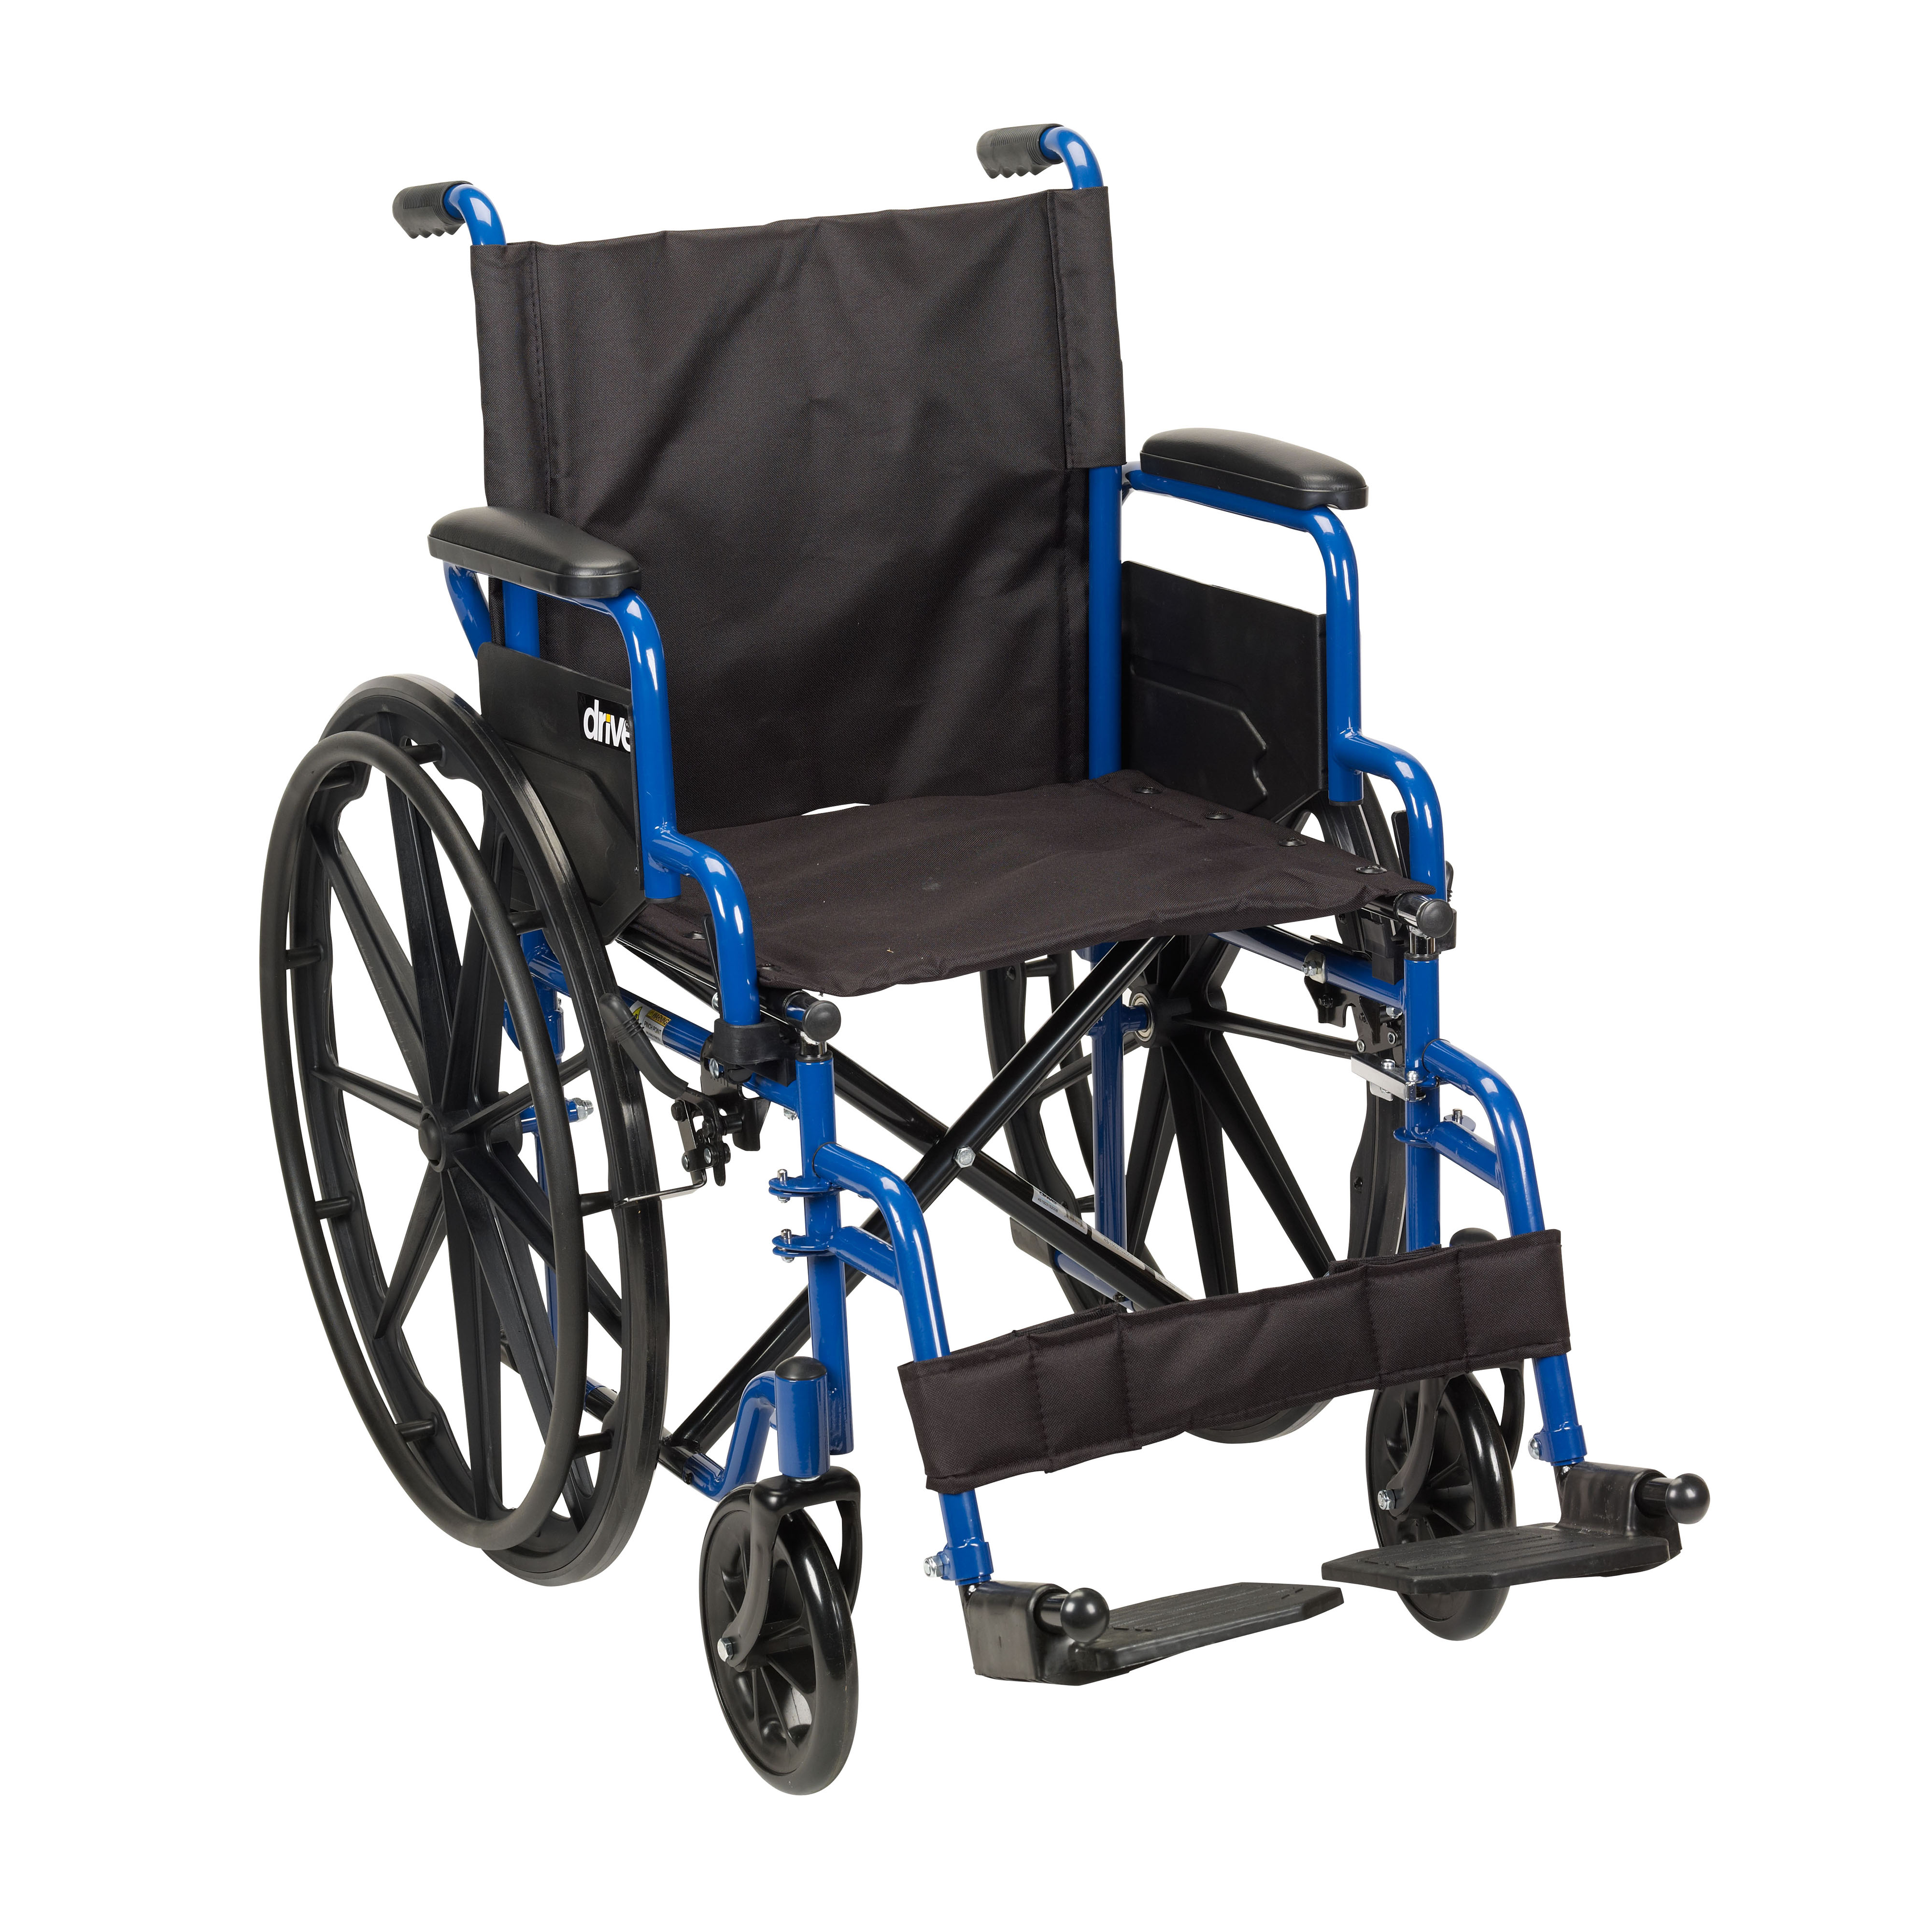 Orthopedic Wheelchair available to rent on daily basis